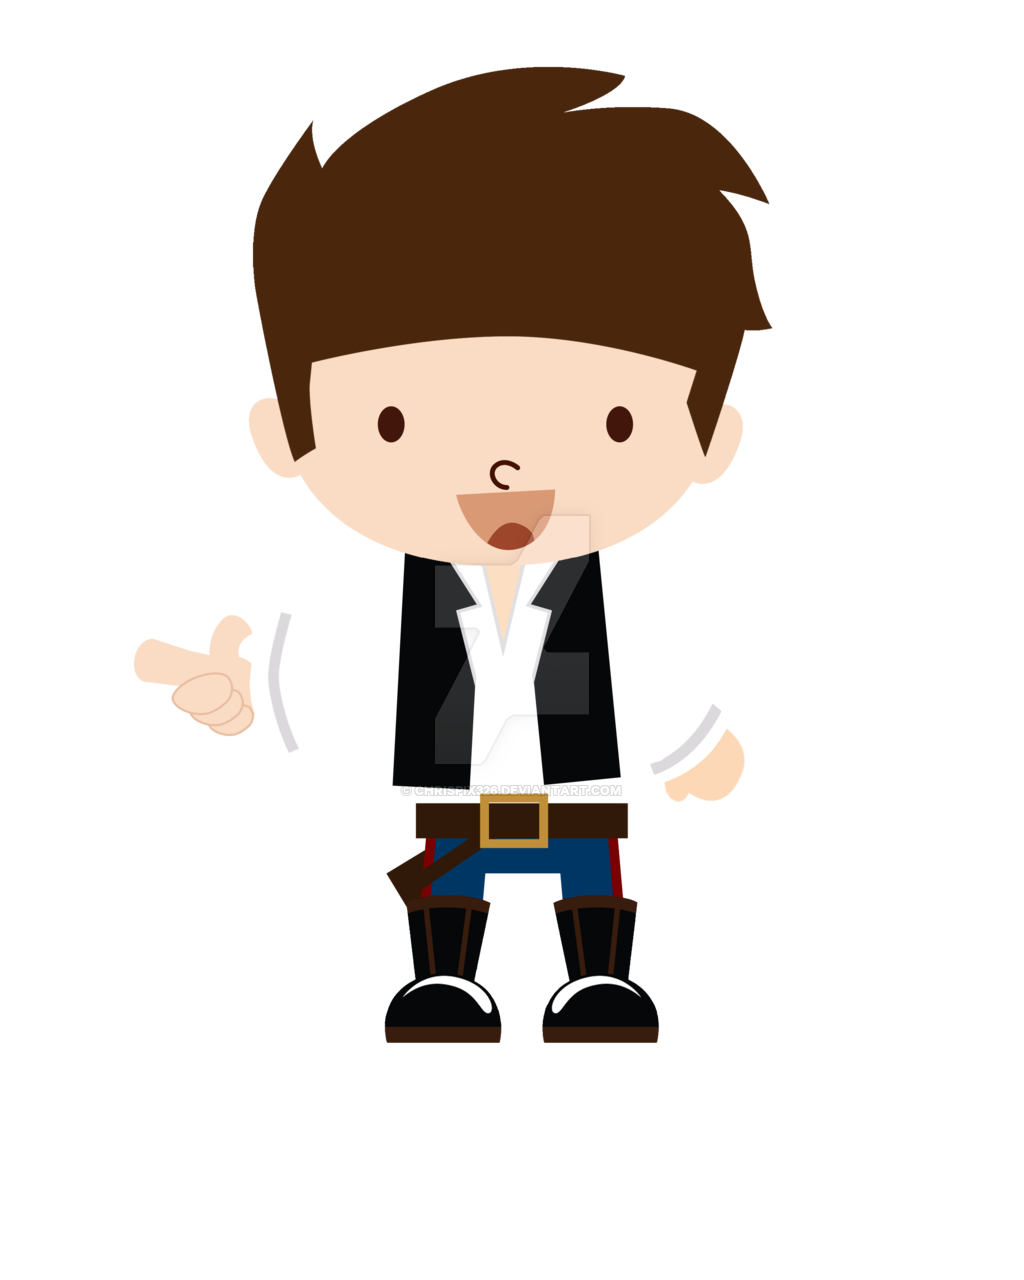 picture royalty free download Han solo by chrispix. Chewbacca clipart baby.